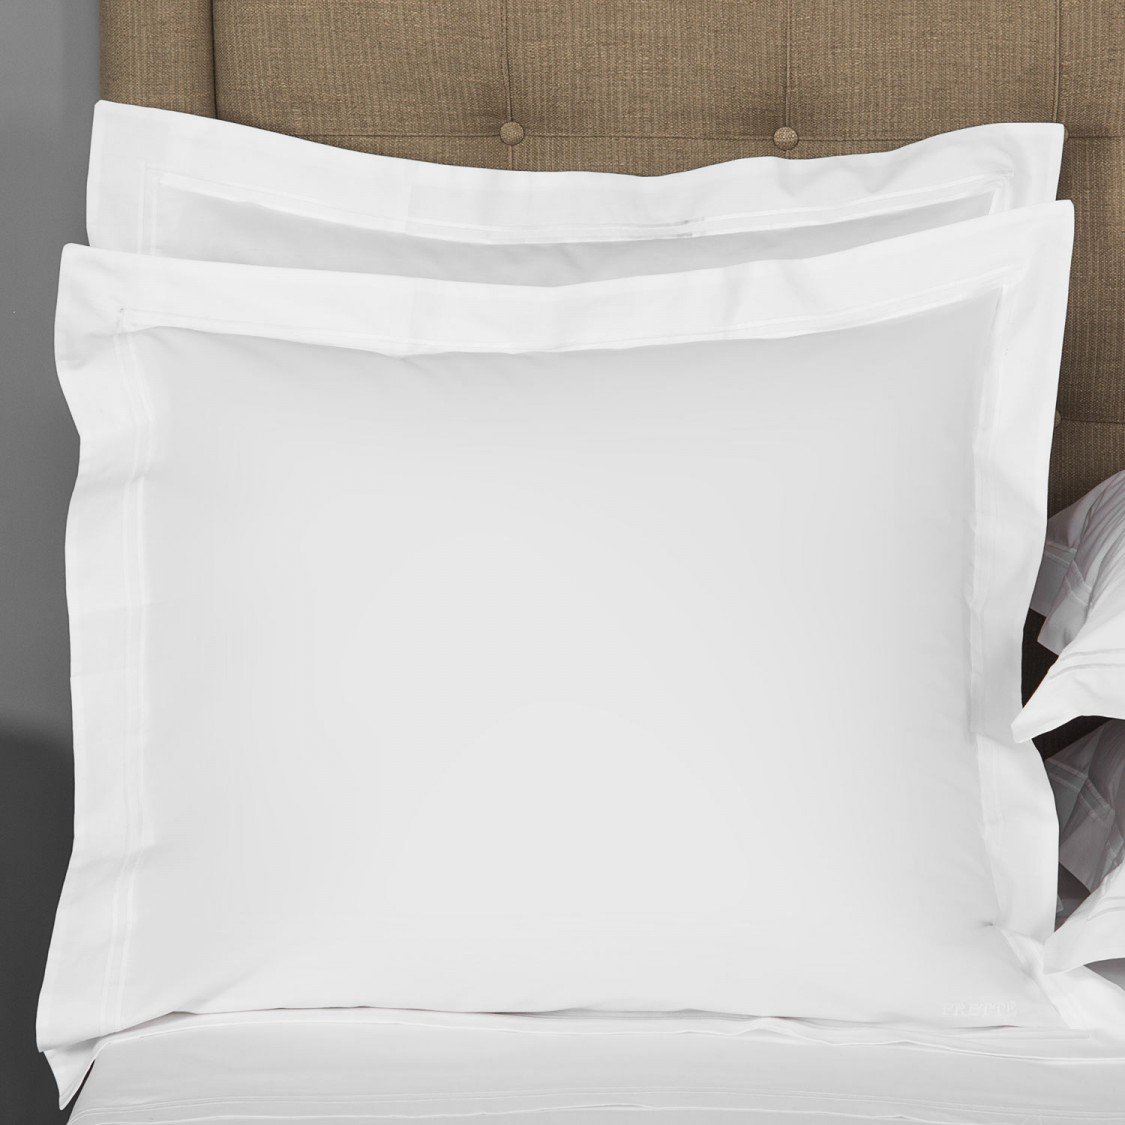 THREAD SPREAD European Square Pillow Shams Set of 2 White 1000 Thread Count 100% Egyptian Cotton Pack of 2 Euro 26 x 26 Bright White Pillow Shams Cushion Cover, Cases Super Soft Decorative. by THREAD SPREAD